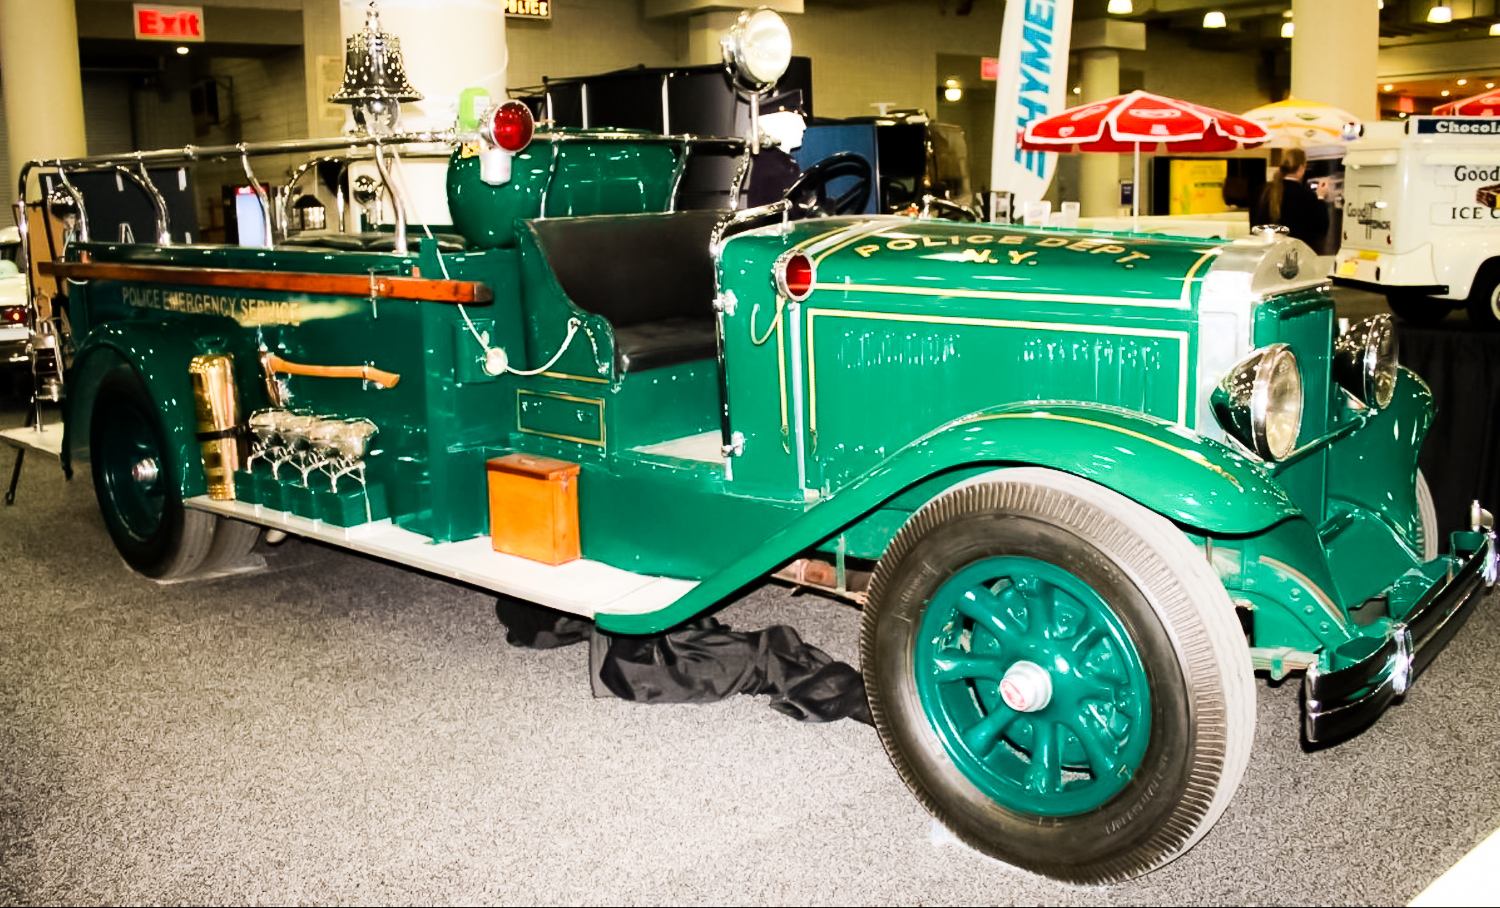 NYPD EMERGENCY SERVICES TRUCK – In the 1930s, the NYPD established a specialized unit called the Emergency Service Unit, equipped with heavy tools and submachine guns. They rode around in open-top trucks like this.